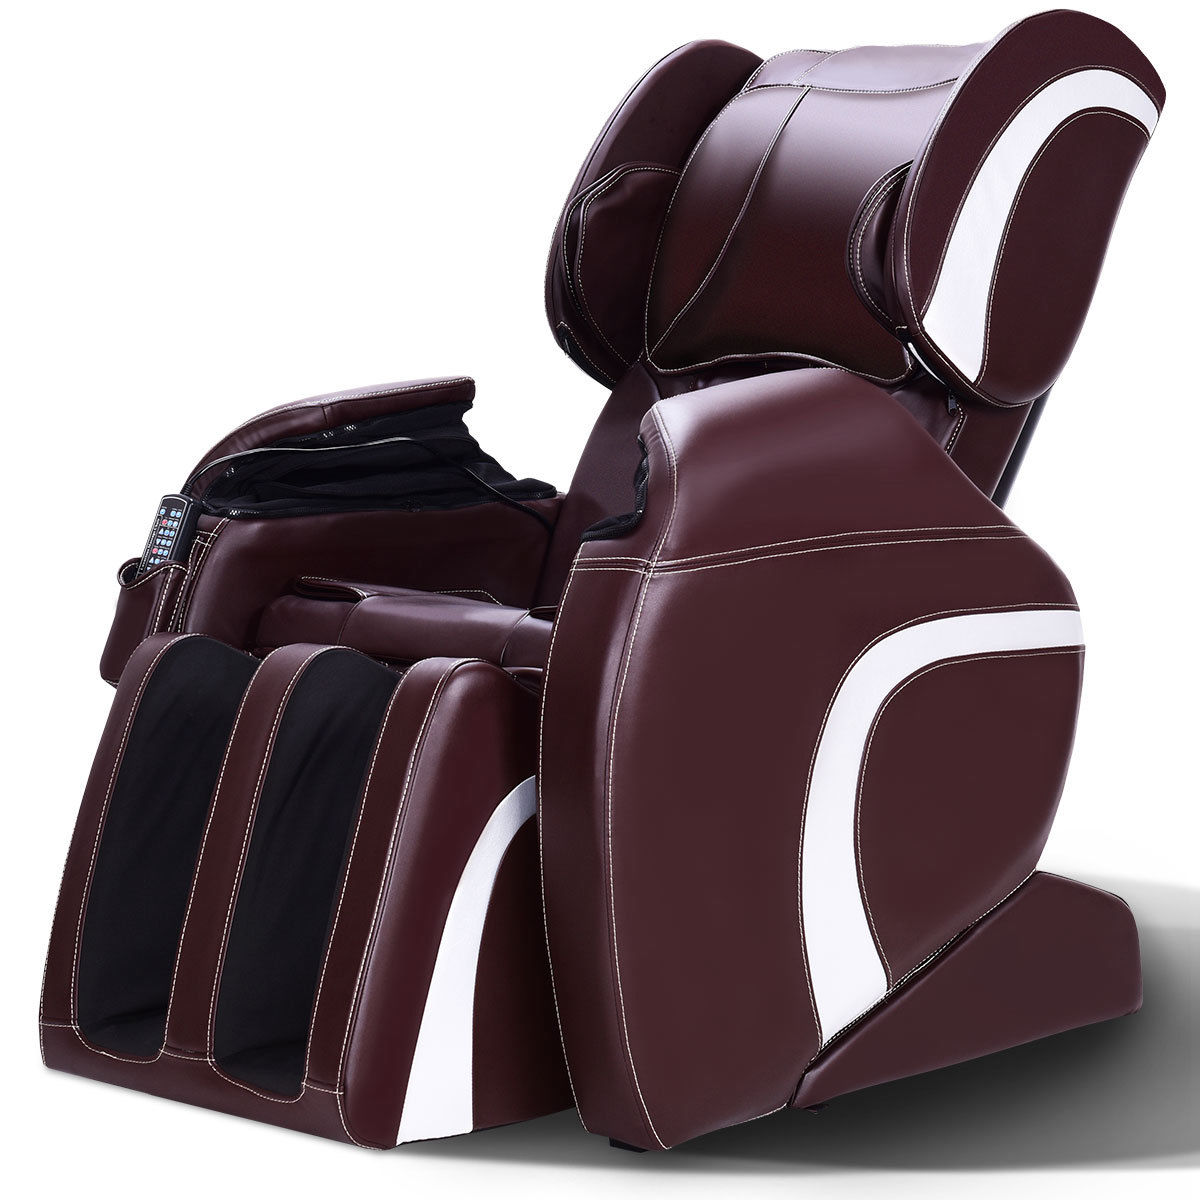 recliner massage chair white styling chairs costway electric full body shiatsu 22 airbags adjustable brown walmart com